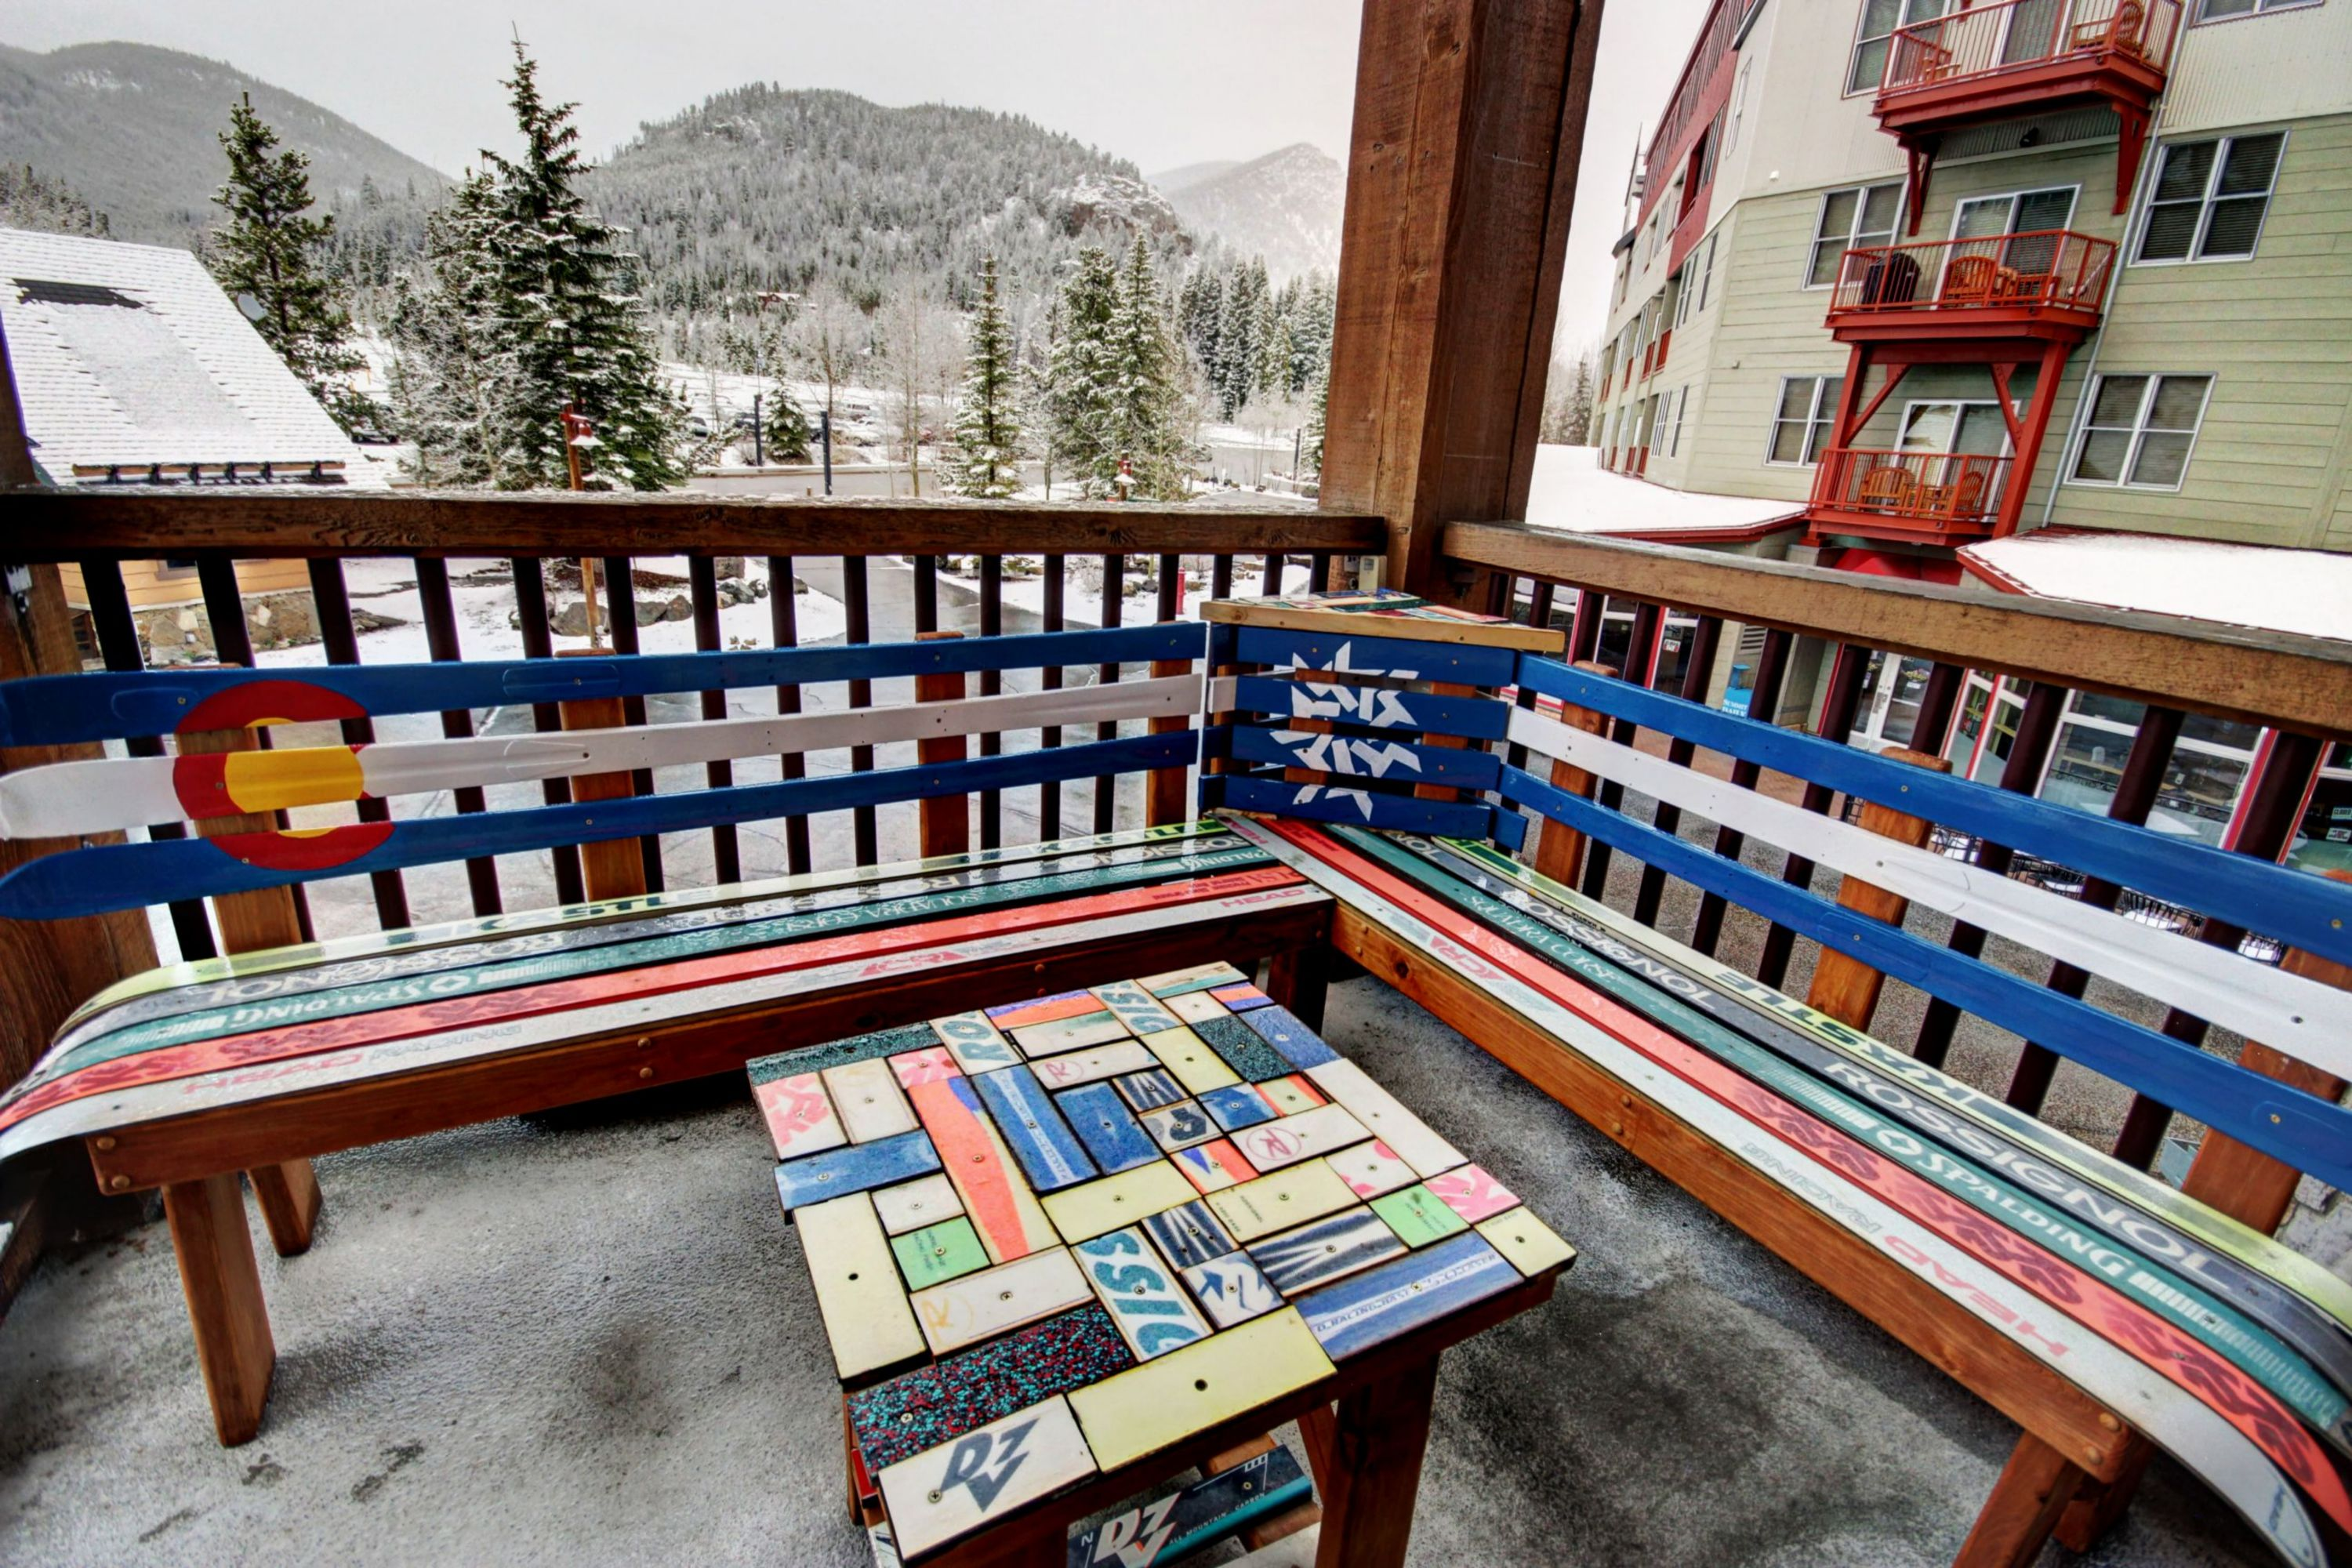 Sitting area made out of colorful skis